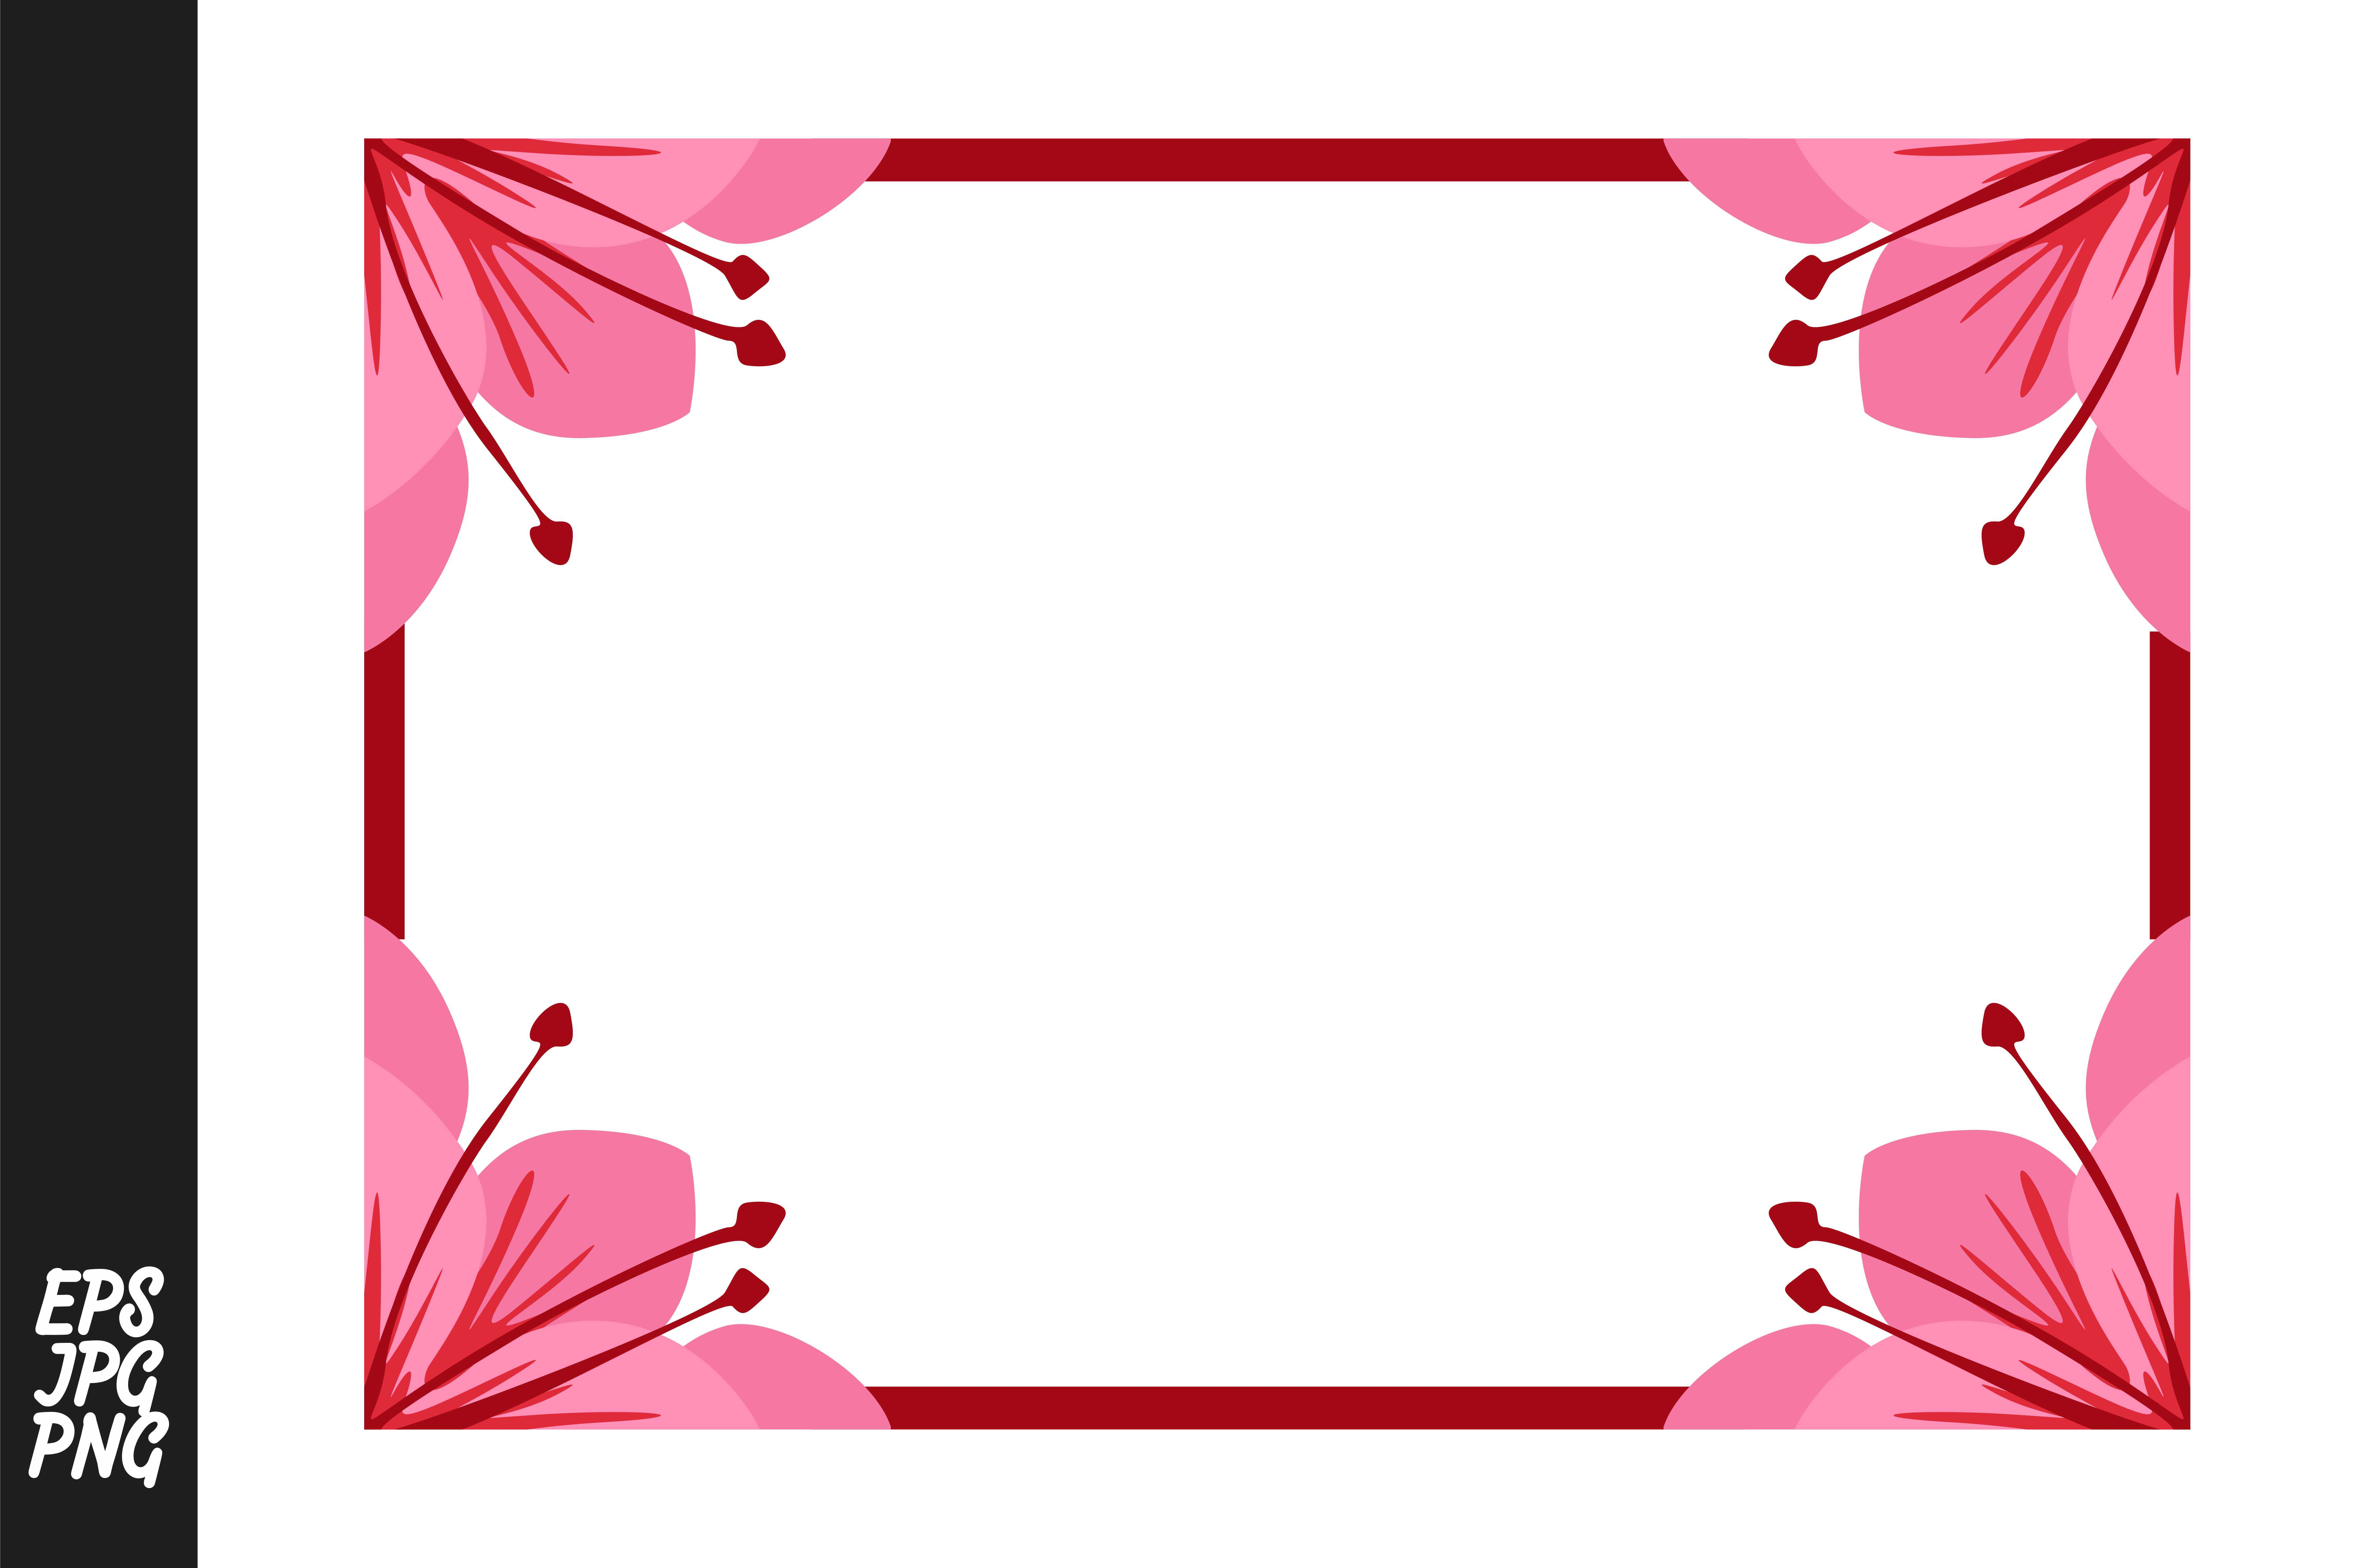 Download Free Pink Flower Ornament Border Graphic By Arief Sapta Adjie for Cricut Explore, Silhouette and other cutting machines.